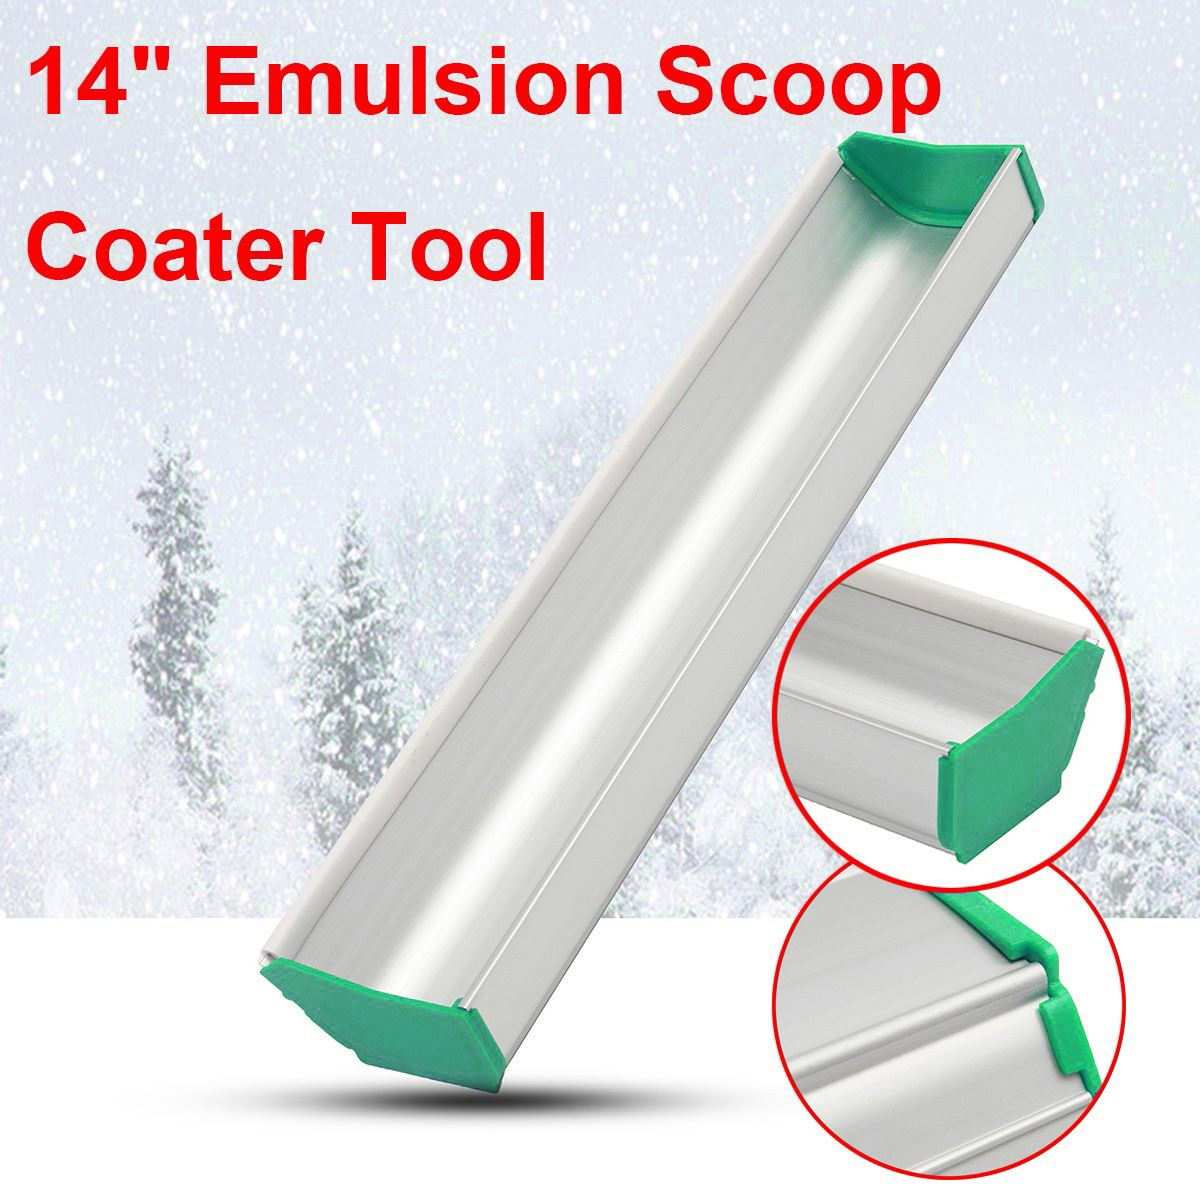 14 inch Emulsion Scoop Coater Silk Screen Printing Press Frame Aluminum Alloy Photo Tool Corrosion Resistance New цена 2017